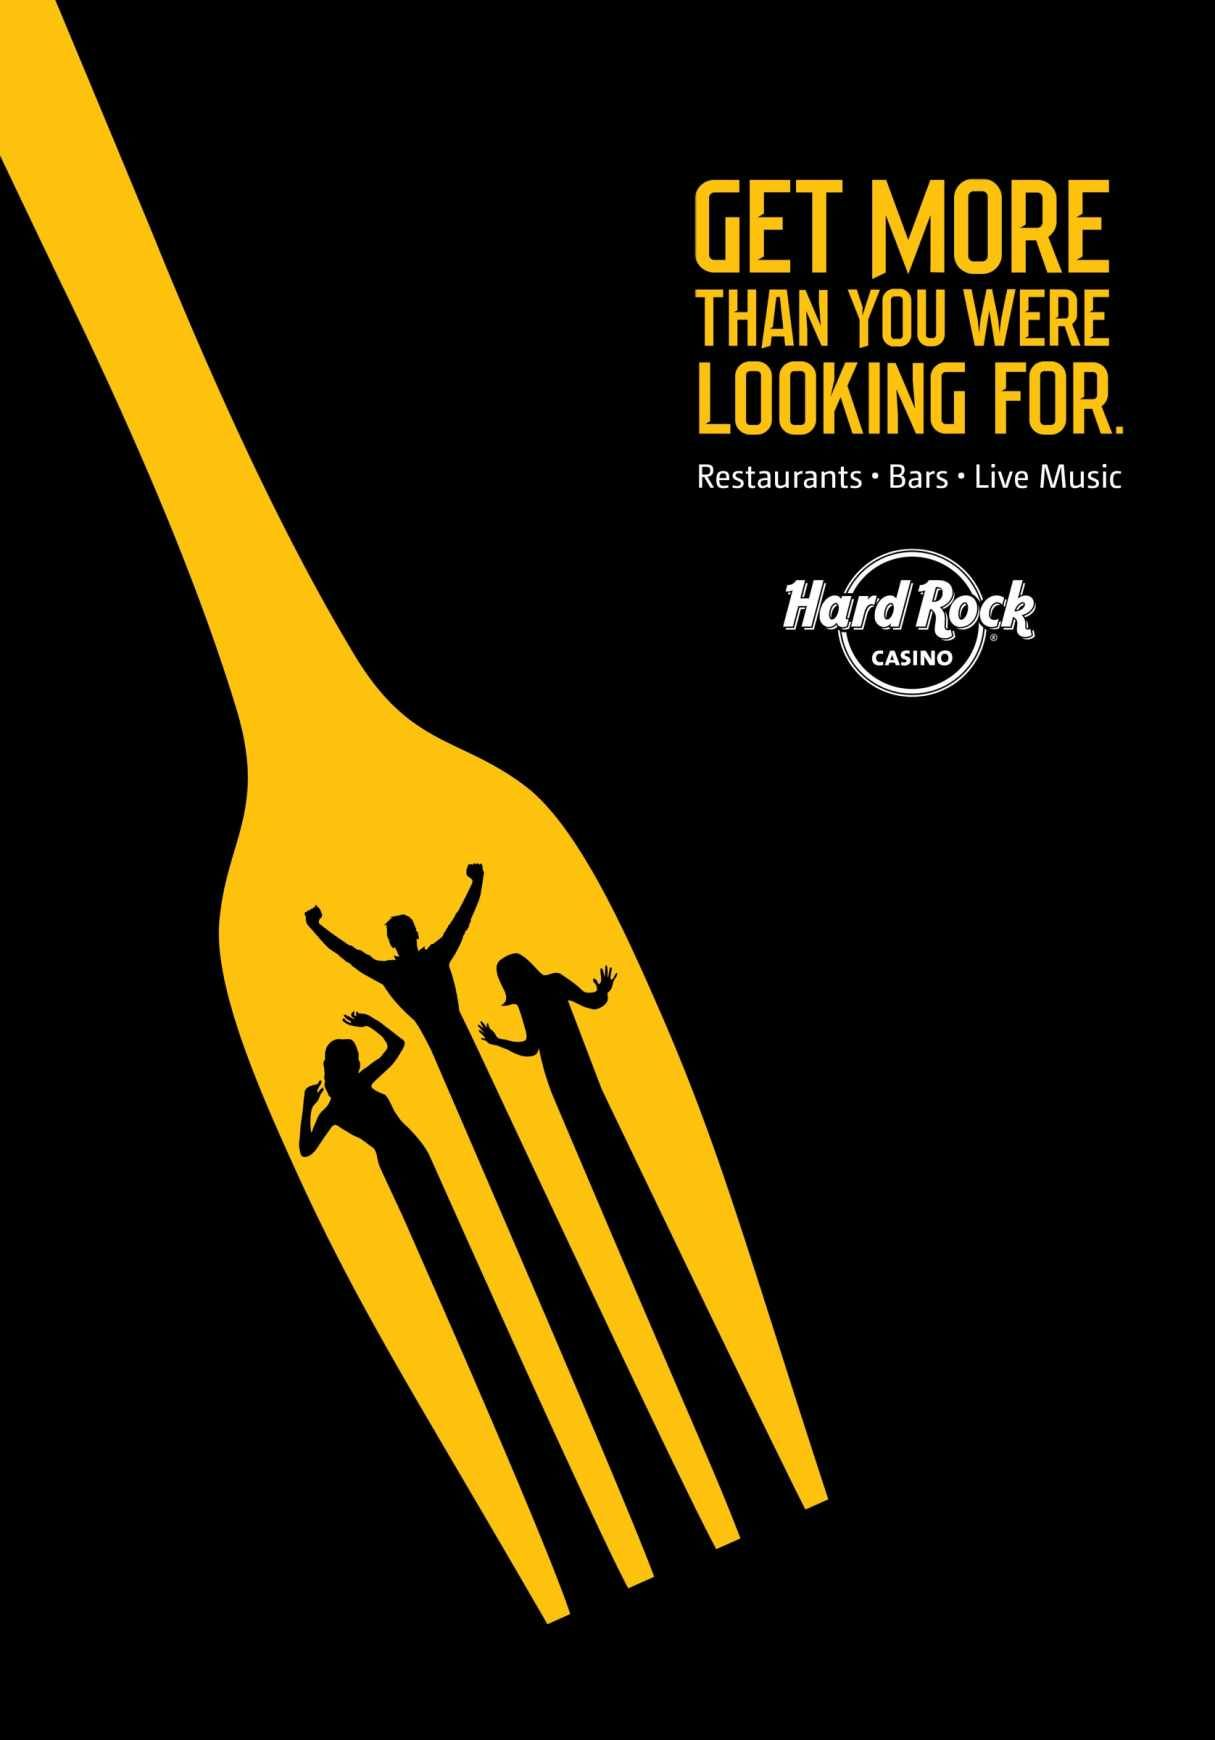 Hard rock casino fork advertising agency taxi vancouver